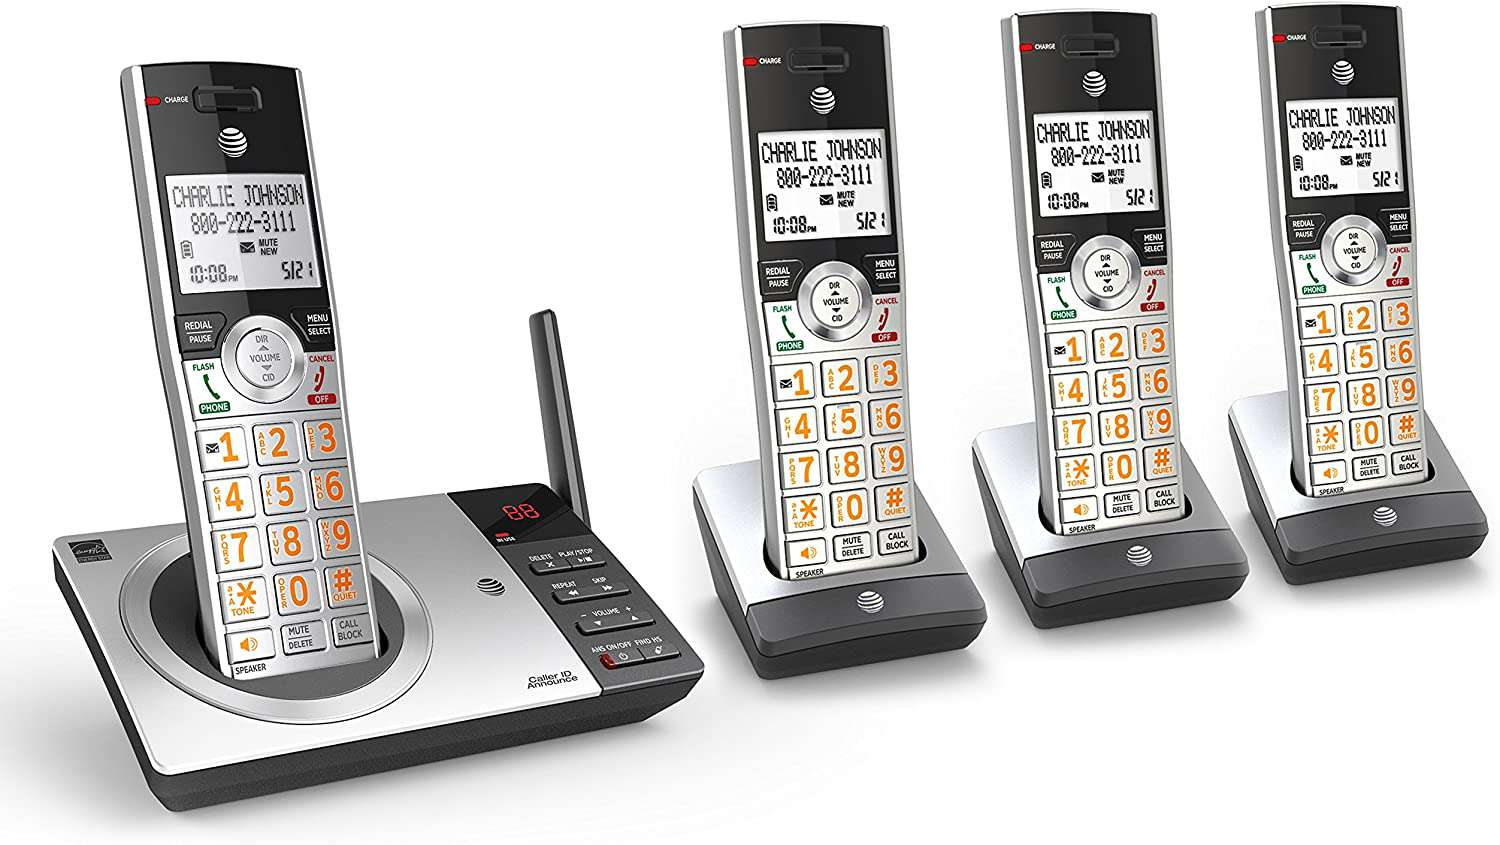 The AT&T DECT 6.0 phone system is expanable.